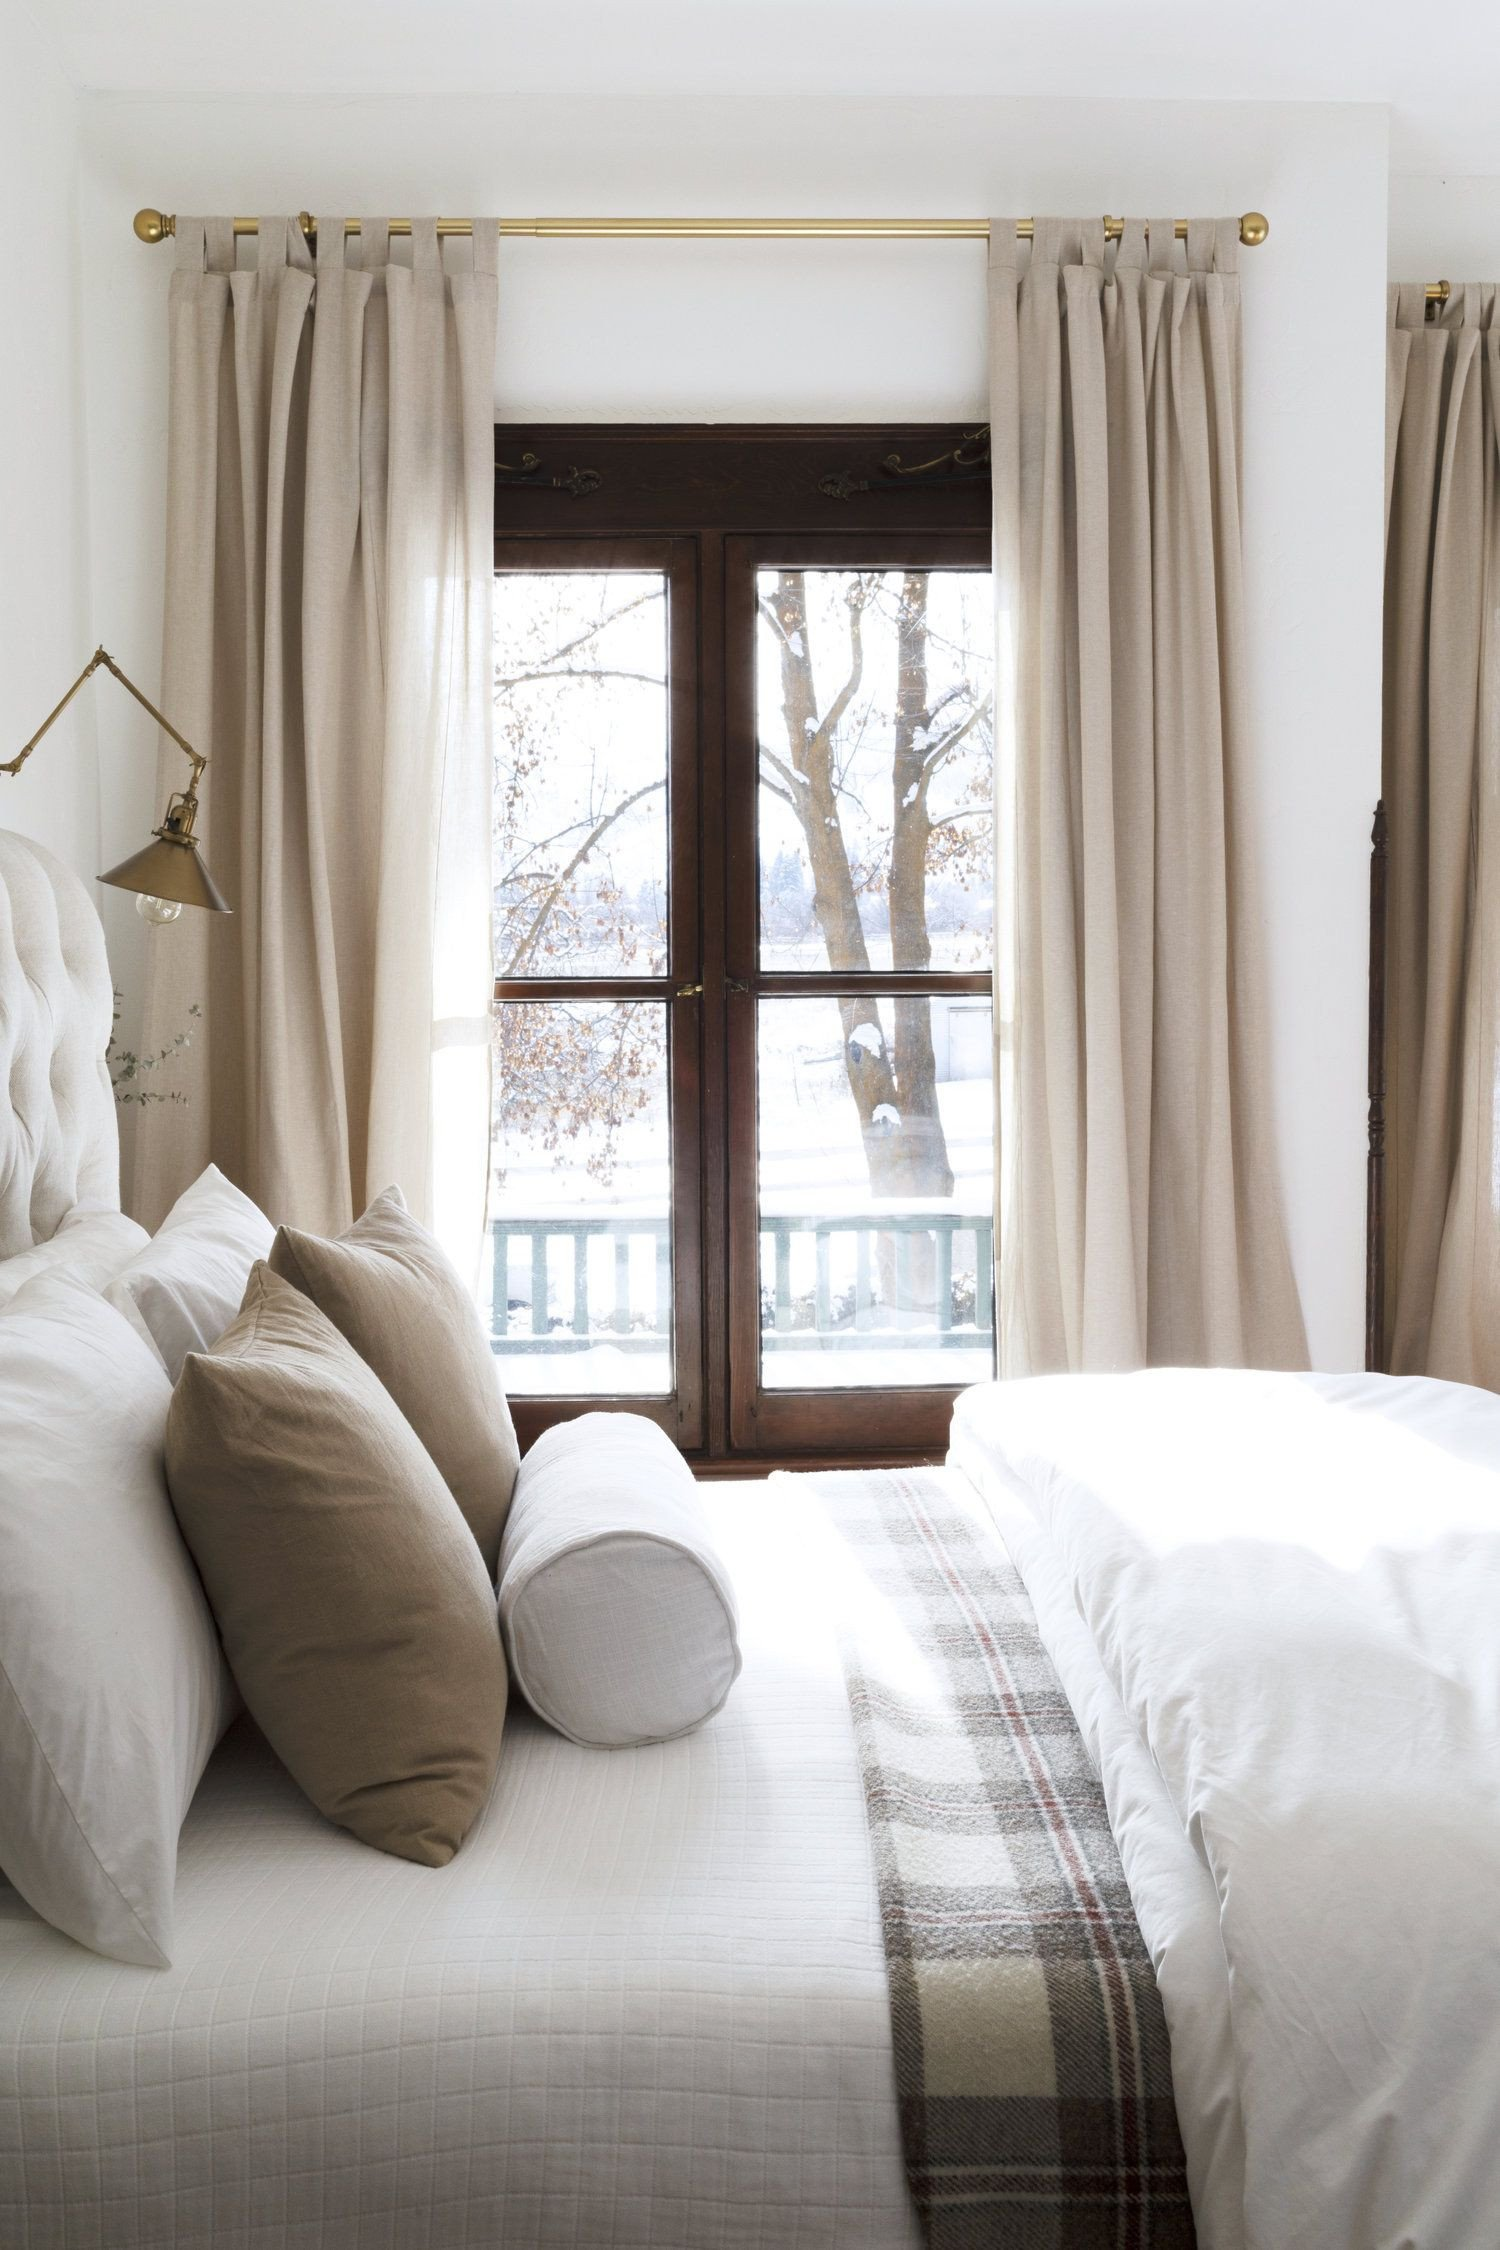 Best Curtains for Bedroom Elegant A Review Of Our Ikea Lenda Curtains